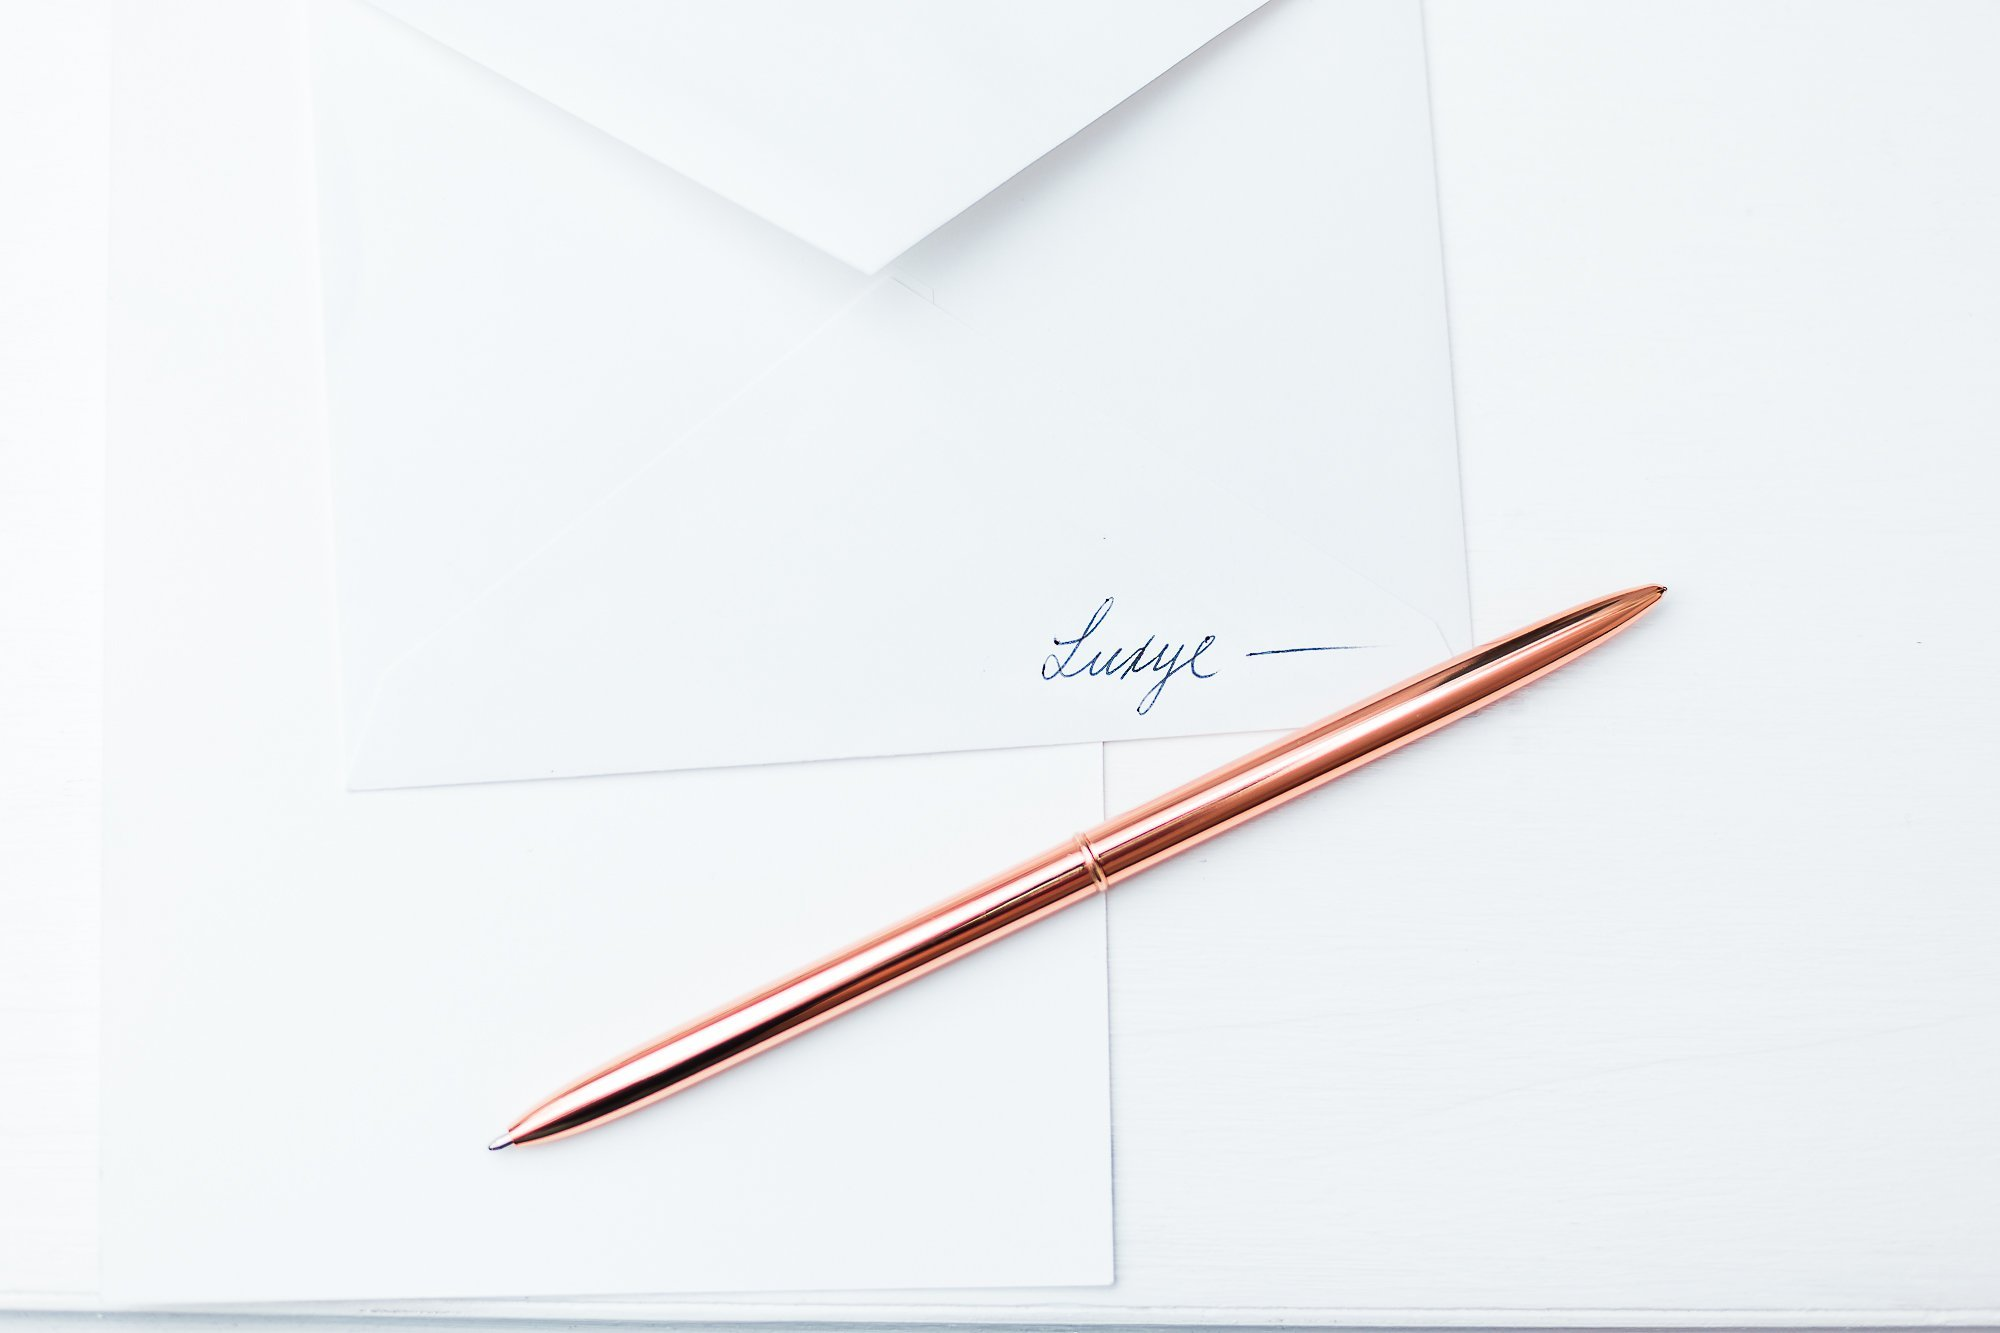 Rose Gold Pens 6 Piece Pen Set - Lightweight Rose Gold Metal Ballpoint Pen in Black Ink in White Glossy Gift Box - Rose Gold Office Decor Supplies (Rose Gold / Black Ink) by Luxye (Image #3)